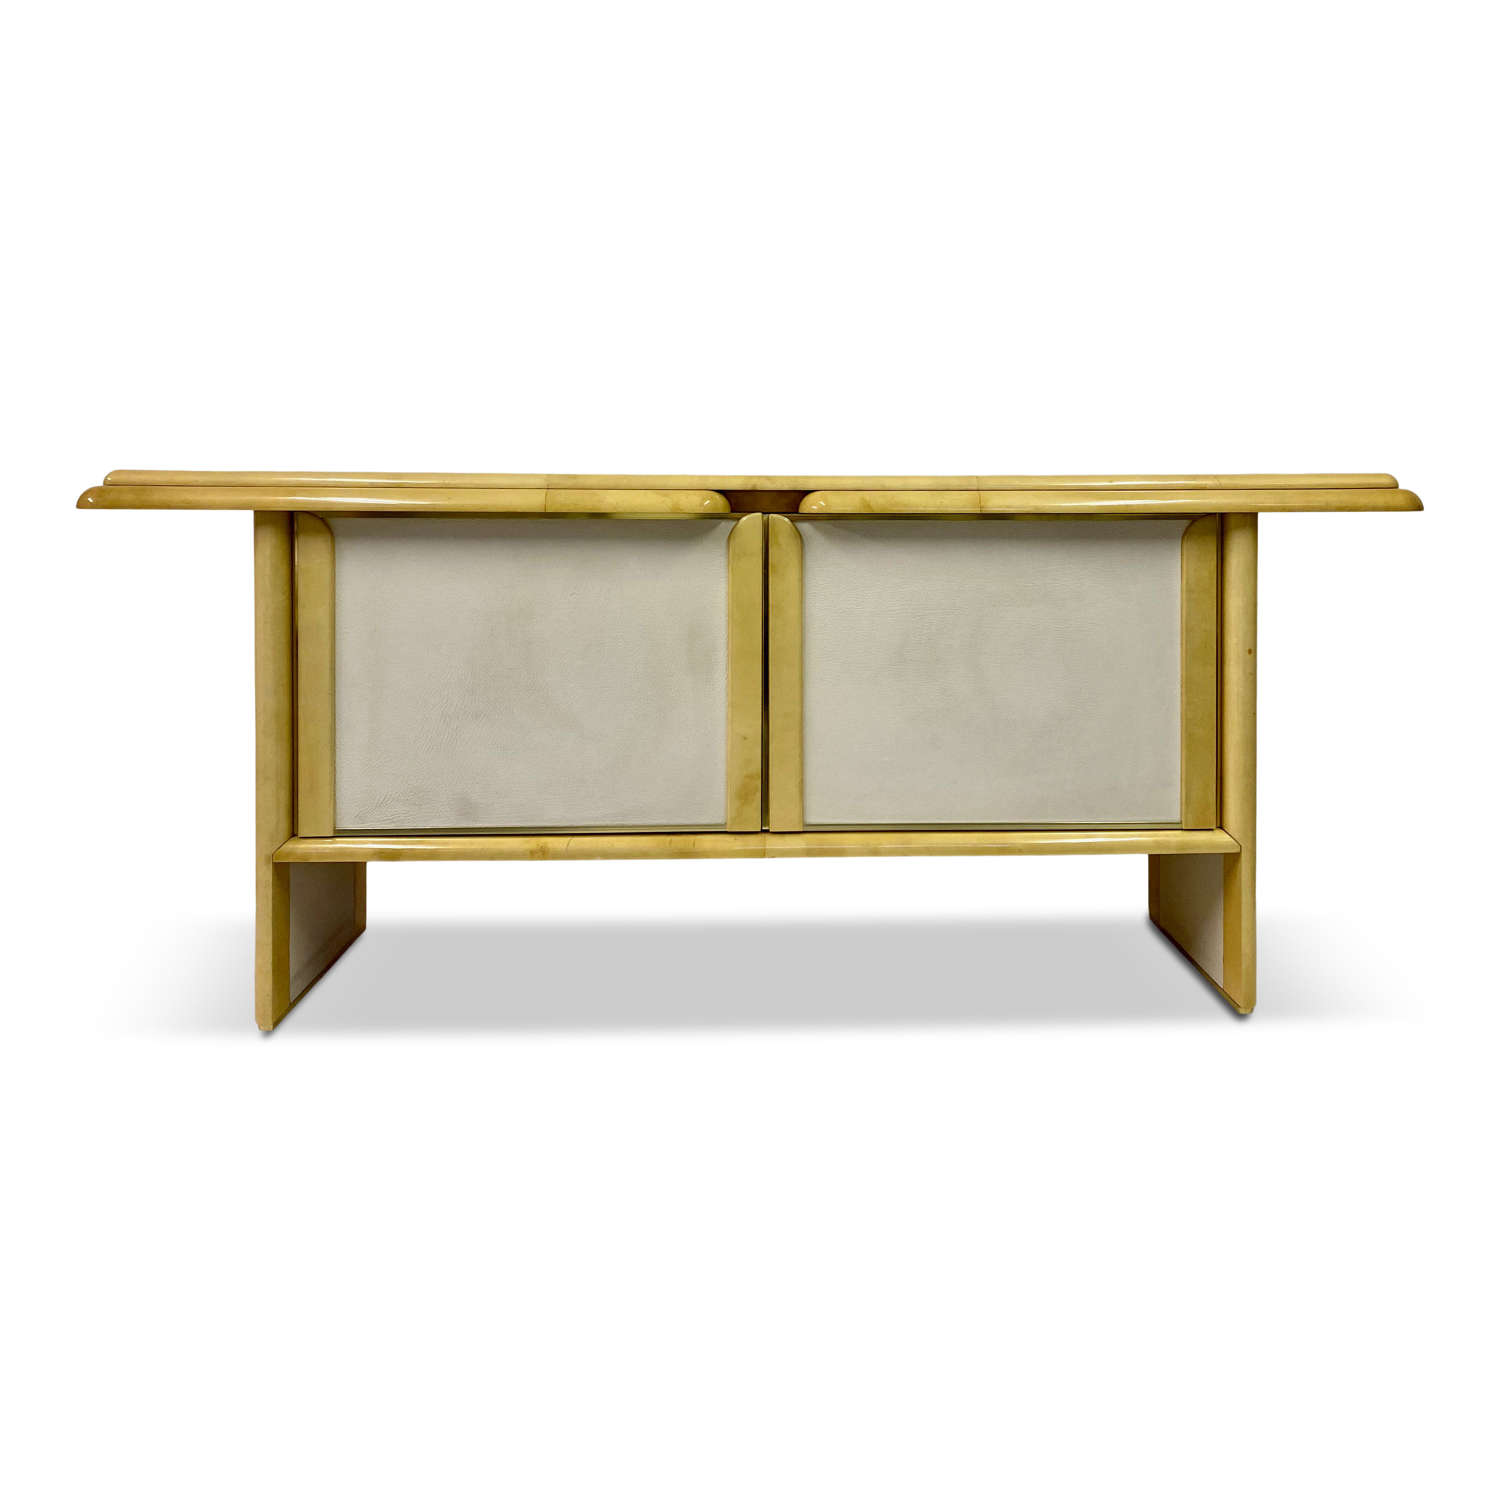 1970s Italian Lacquered Goatskin and Leather Console Sideboard